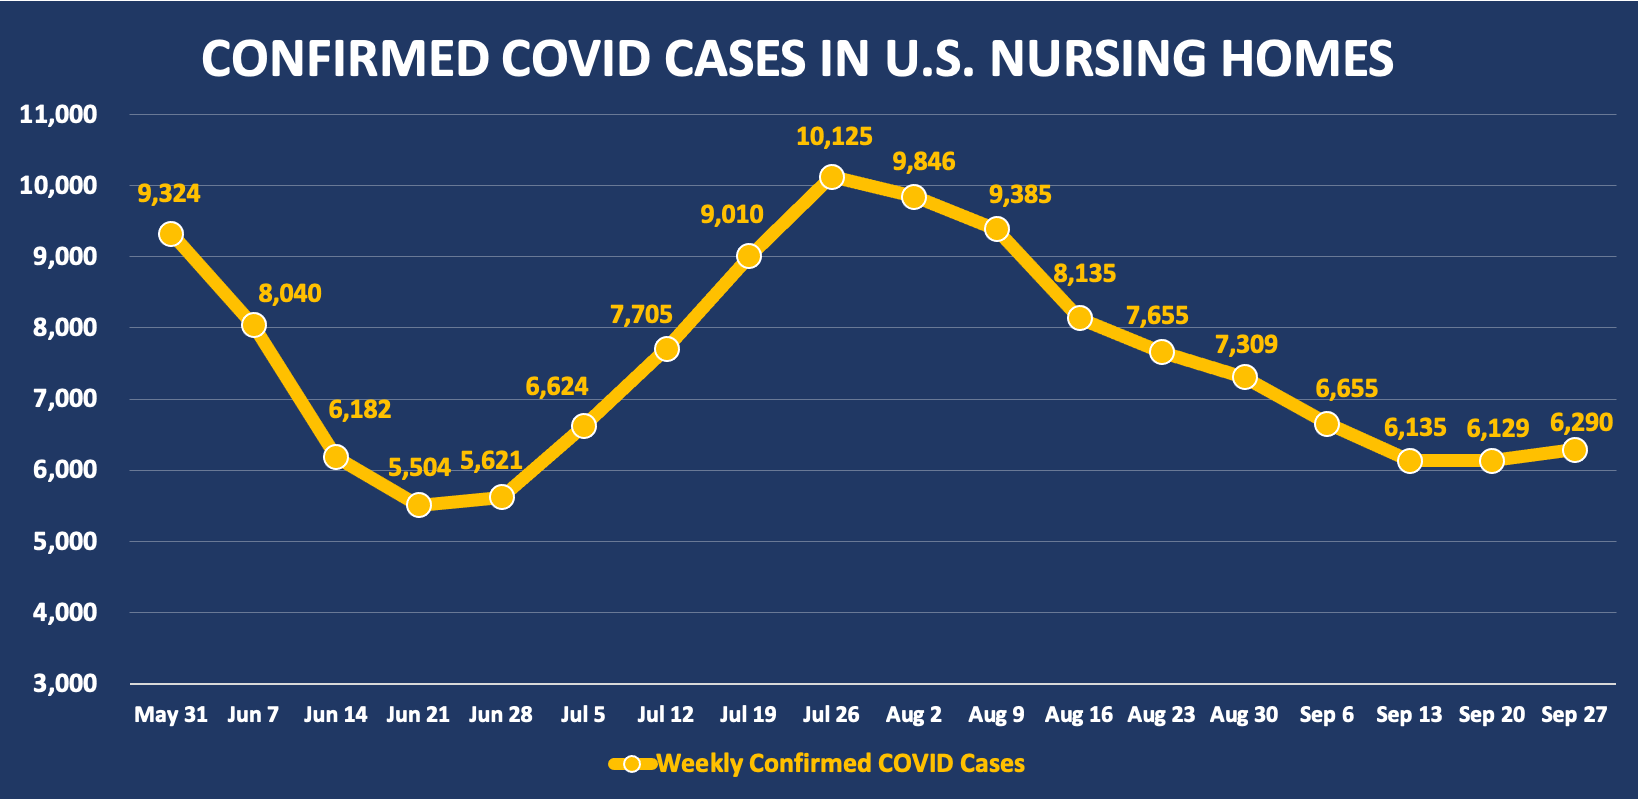 Confirmed COVID cases in U.S. nursing homes.